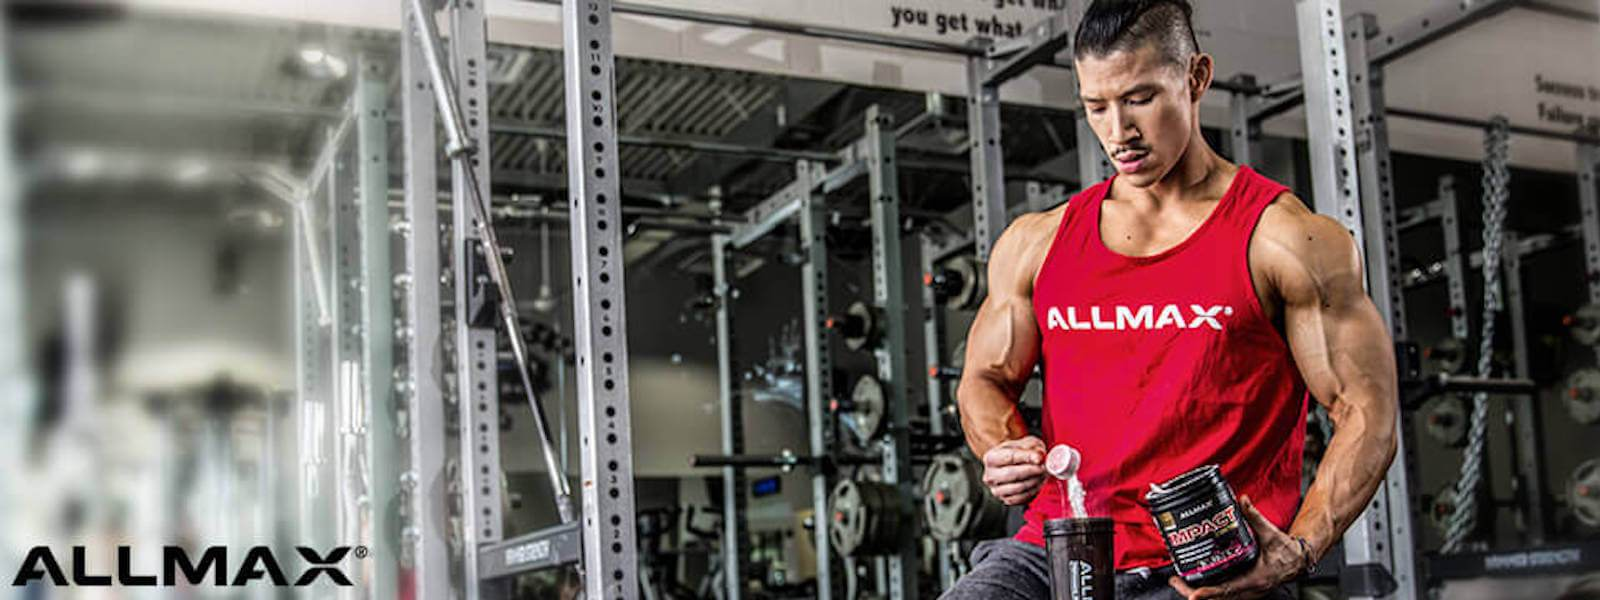 Reasons We Love Allmax Supplements Blog Post at Supplement Superstore Canada